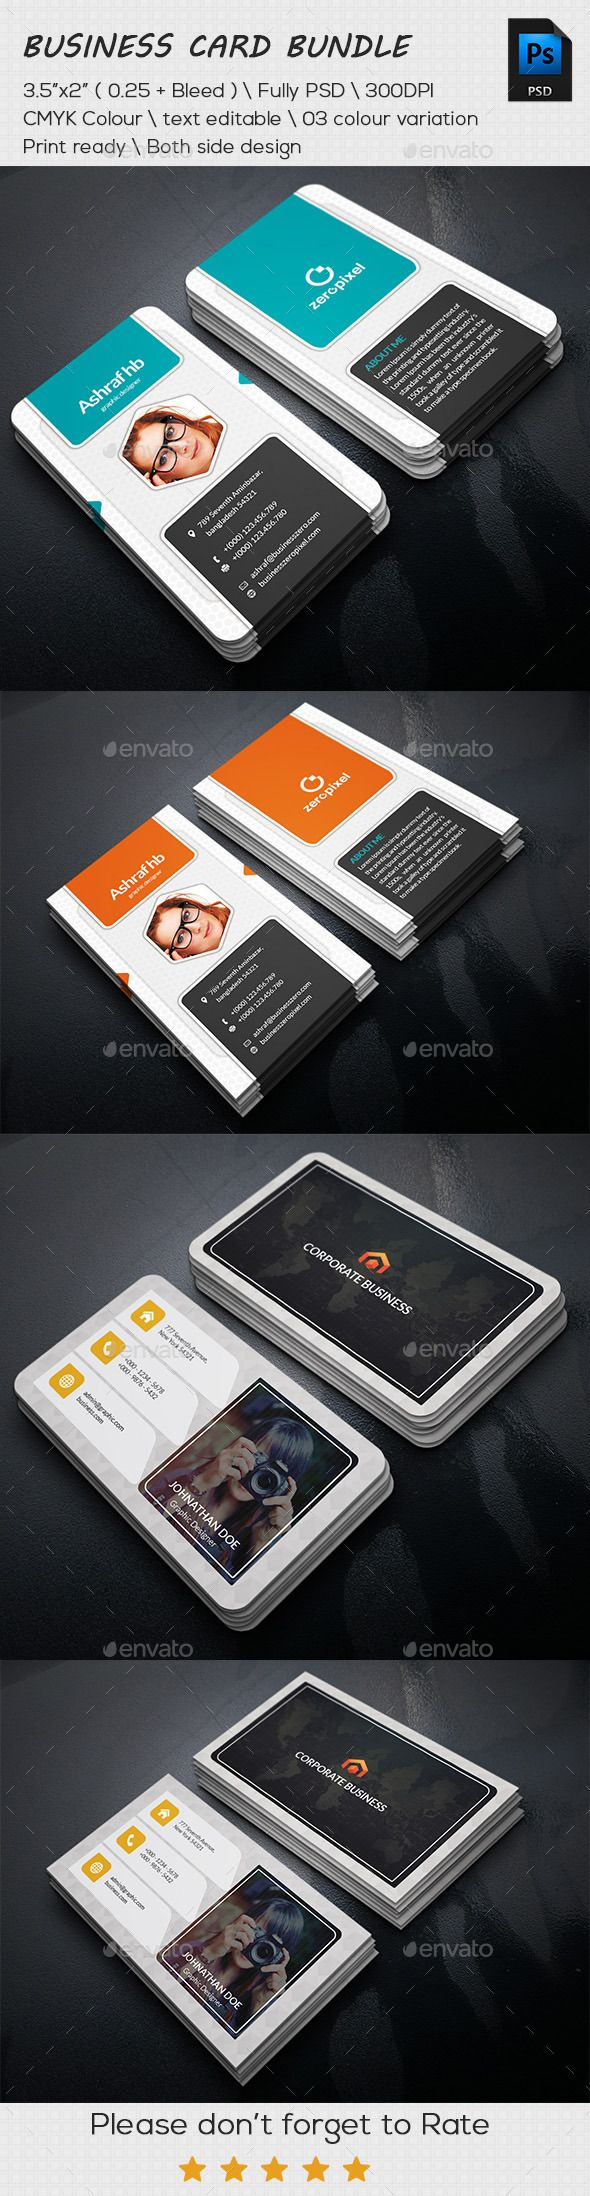 Personal Business Cards Bundle Template #design Download: http://graphicriver.net/item/personal-business-cards-bundle/11478835?ref=ksioks